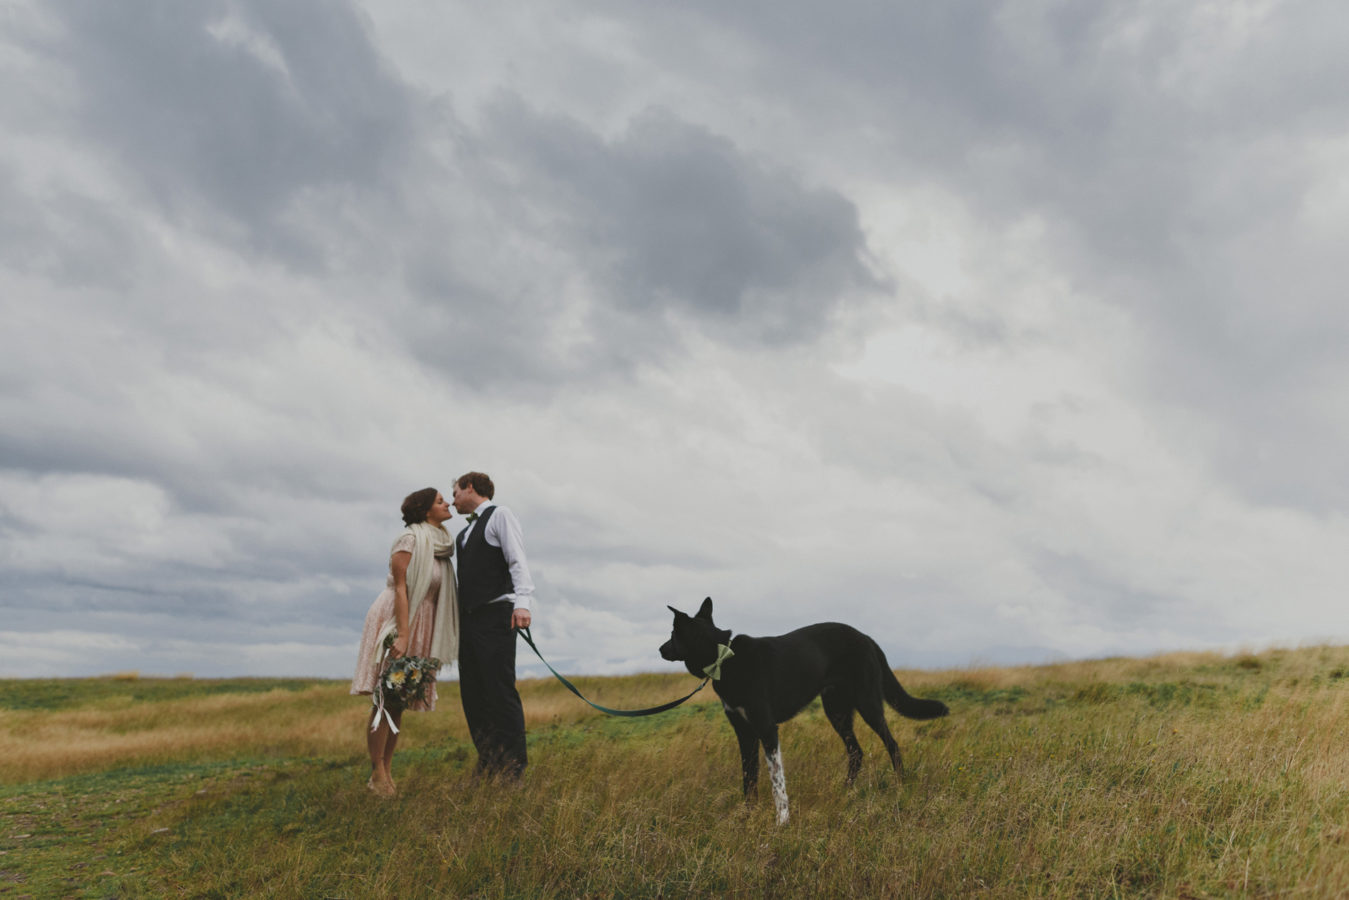 dog on a leash looking at a bride and groom kissing on a grassy field under a stormy sky